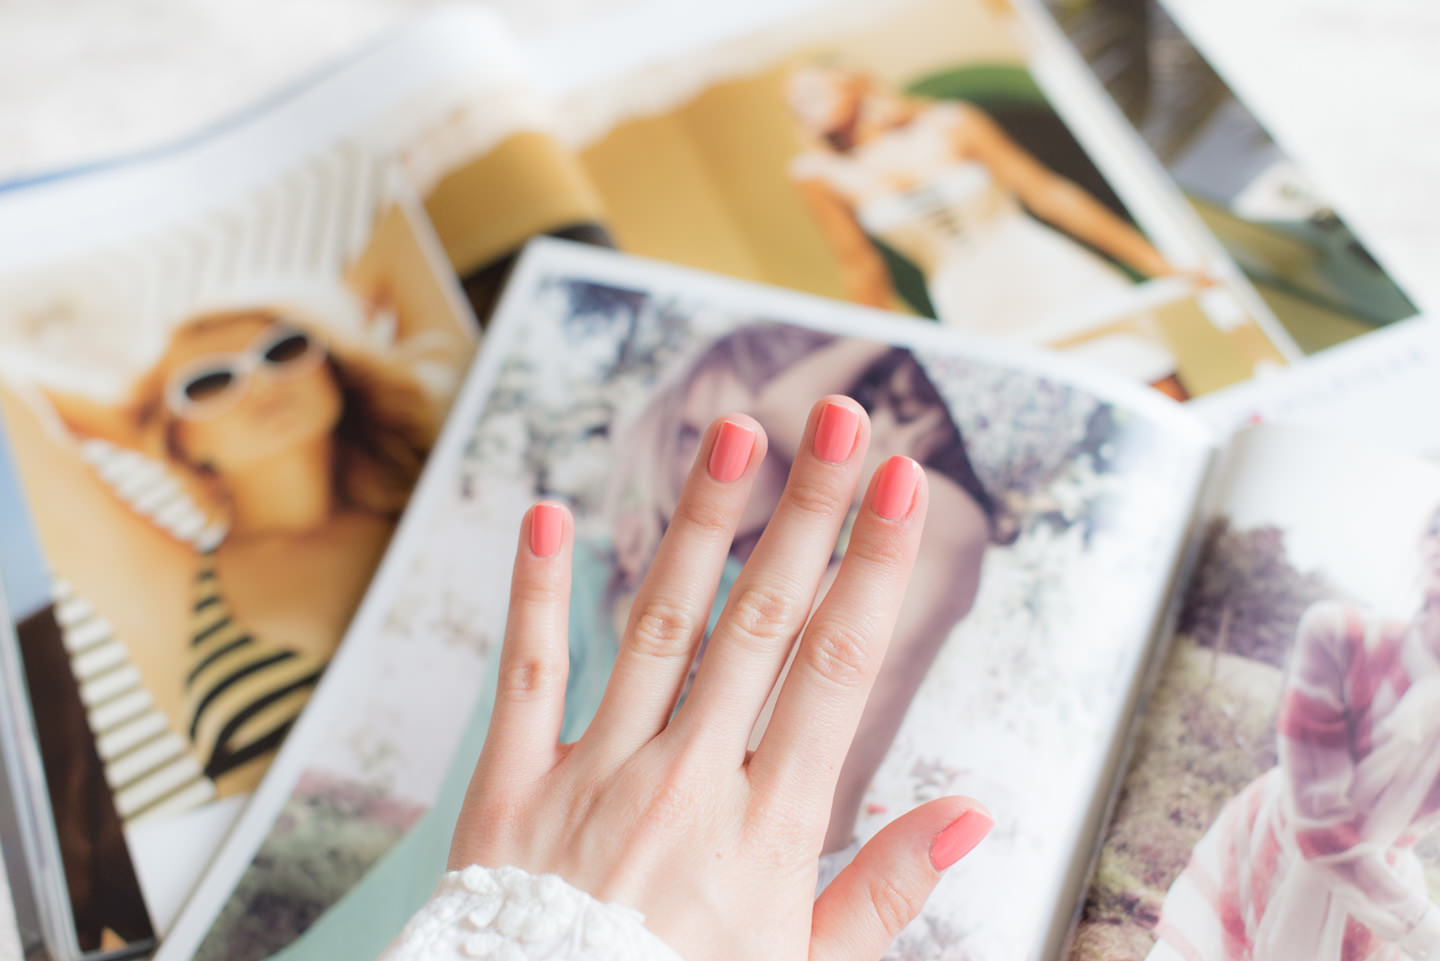 Blog-Mode-And-The-City-Lifestyle-Les-Cinq-Petites-Choses-126-vernis-ongles-corail-peggy-sage